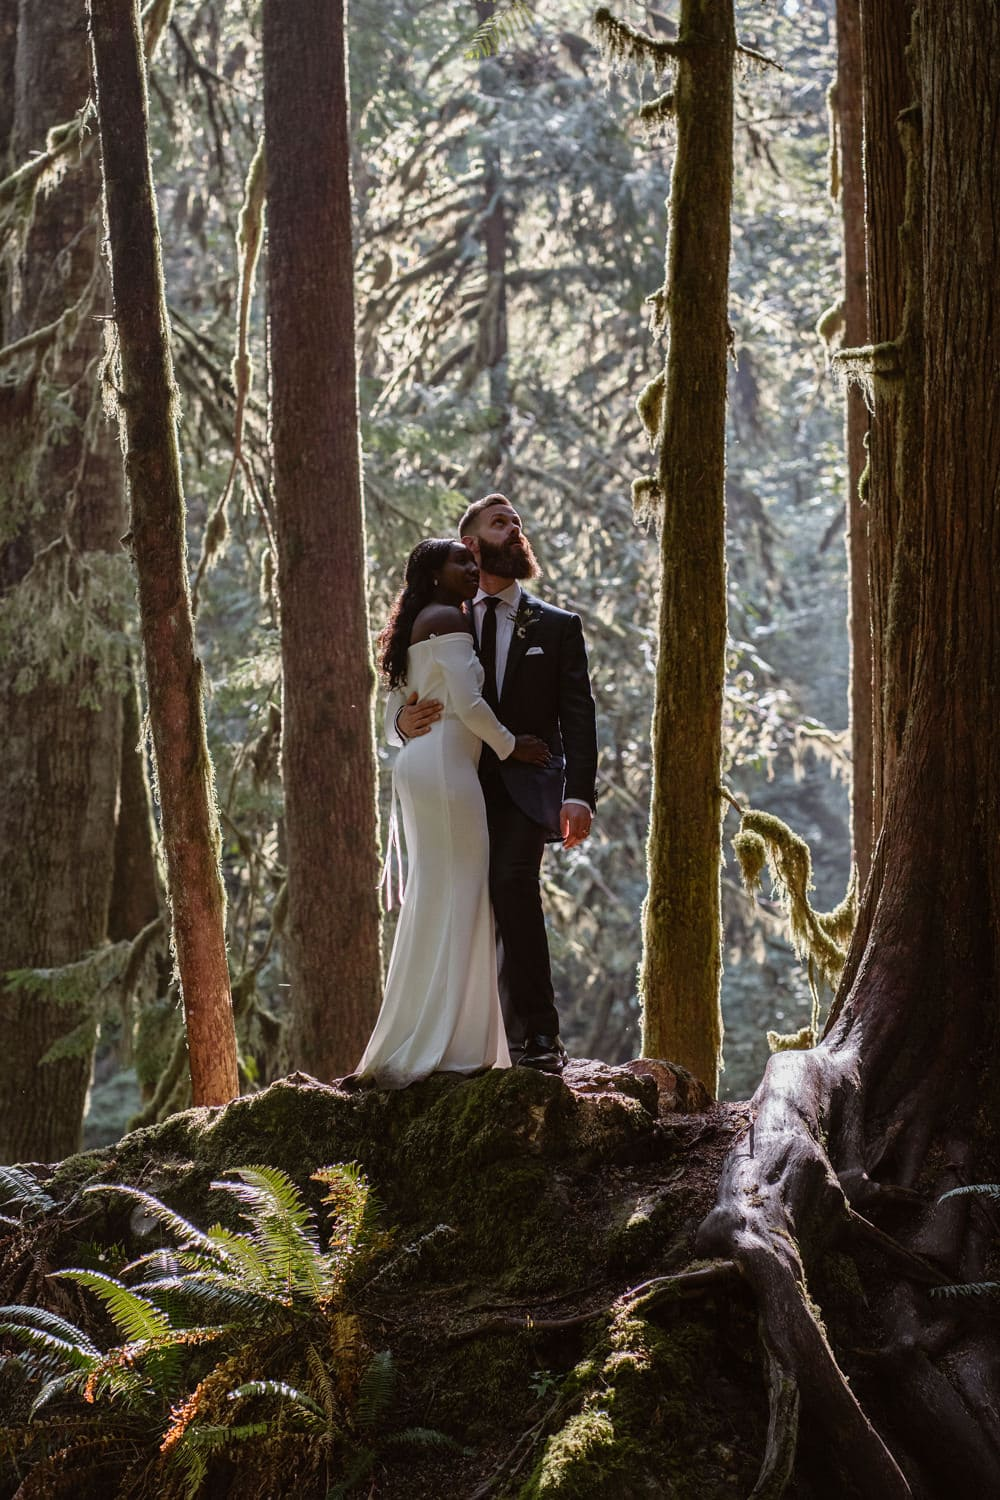 Announcing Your Elopement - Olympic National Park Elopement